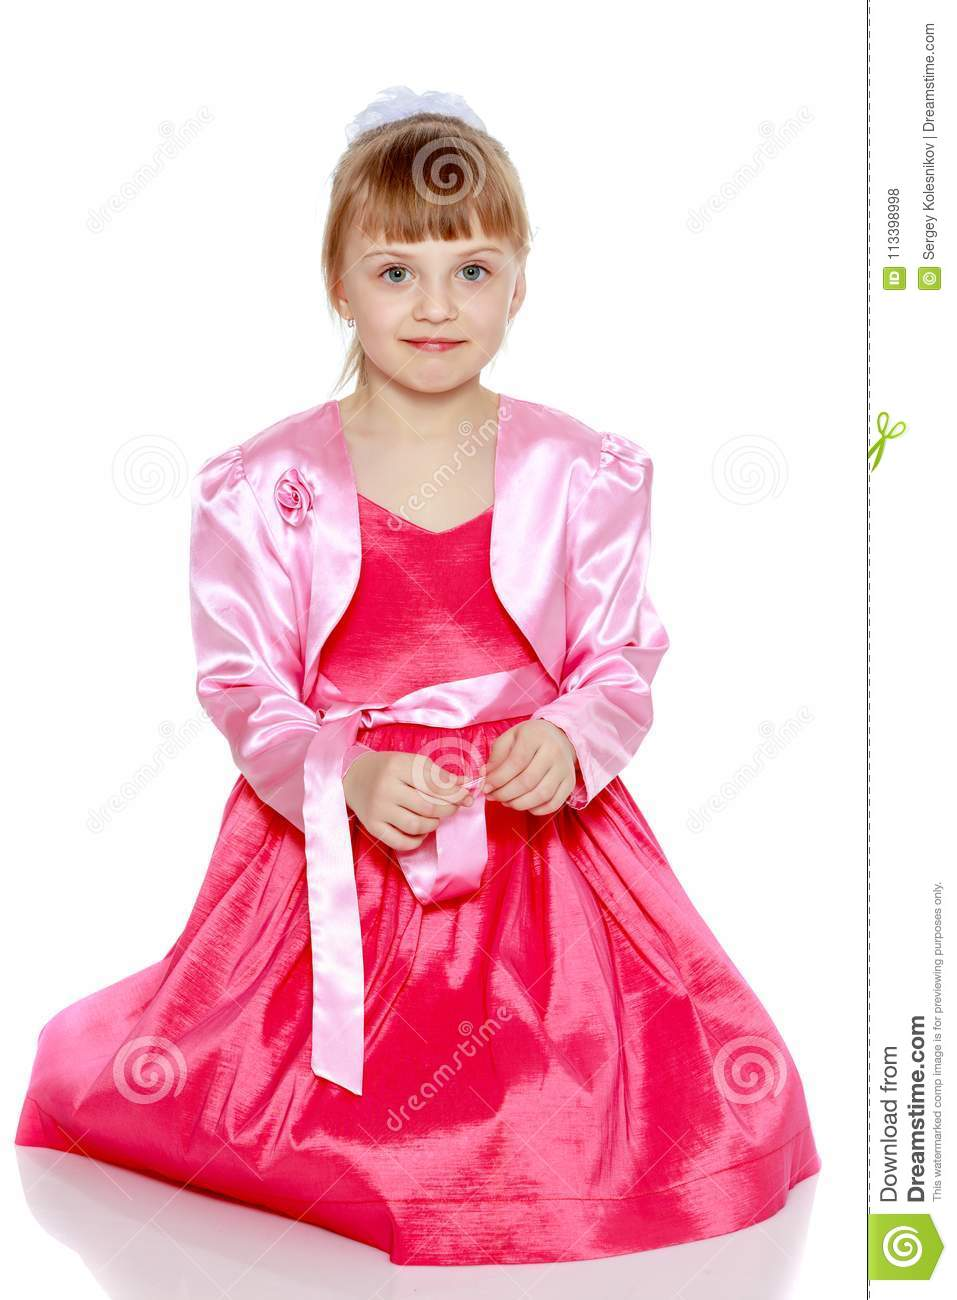 ae11ab6dd3d Little Blonde Girl In Red Dress. Stock Photo - Image of lovely ...